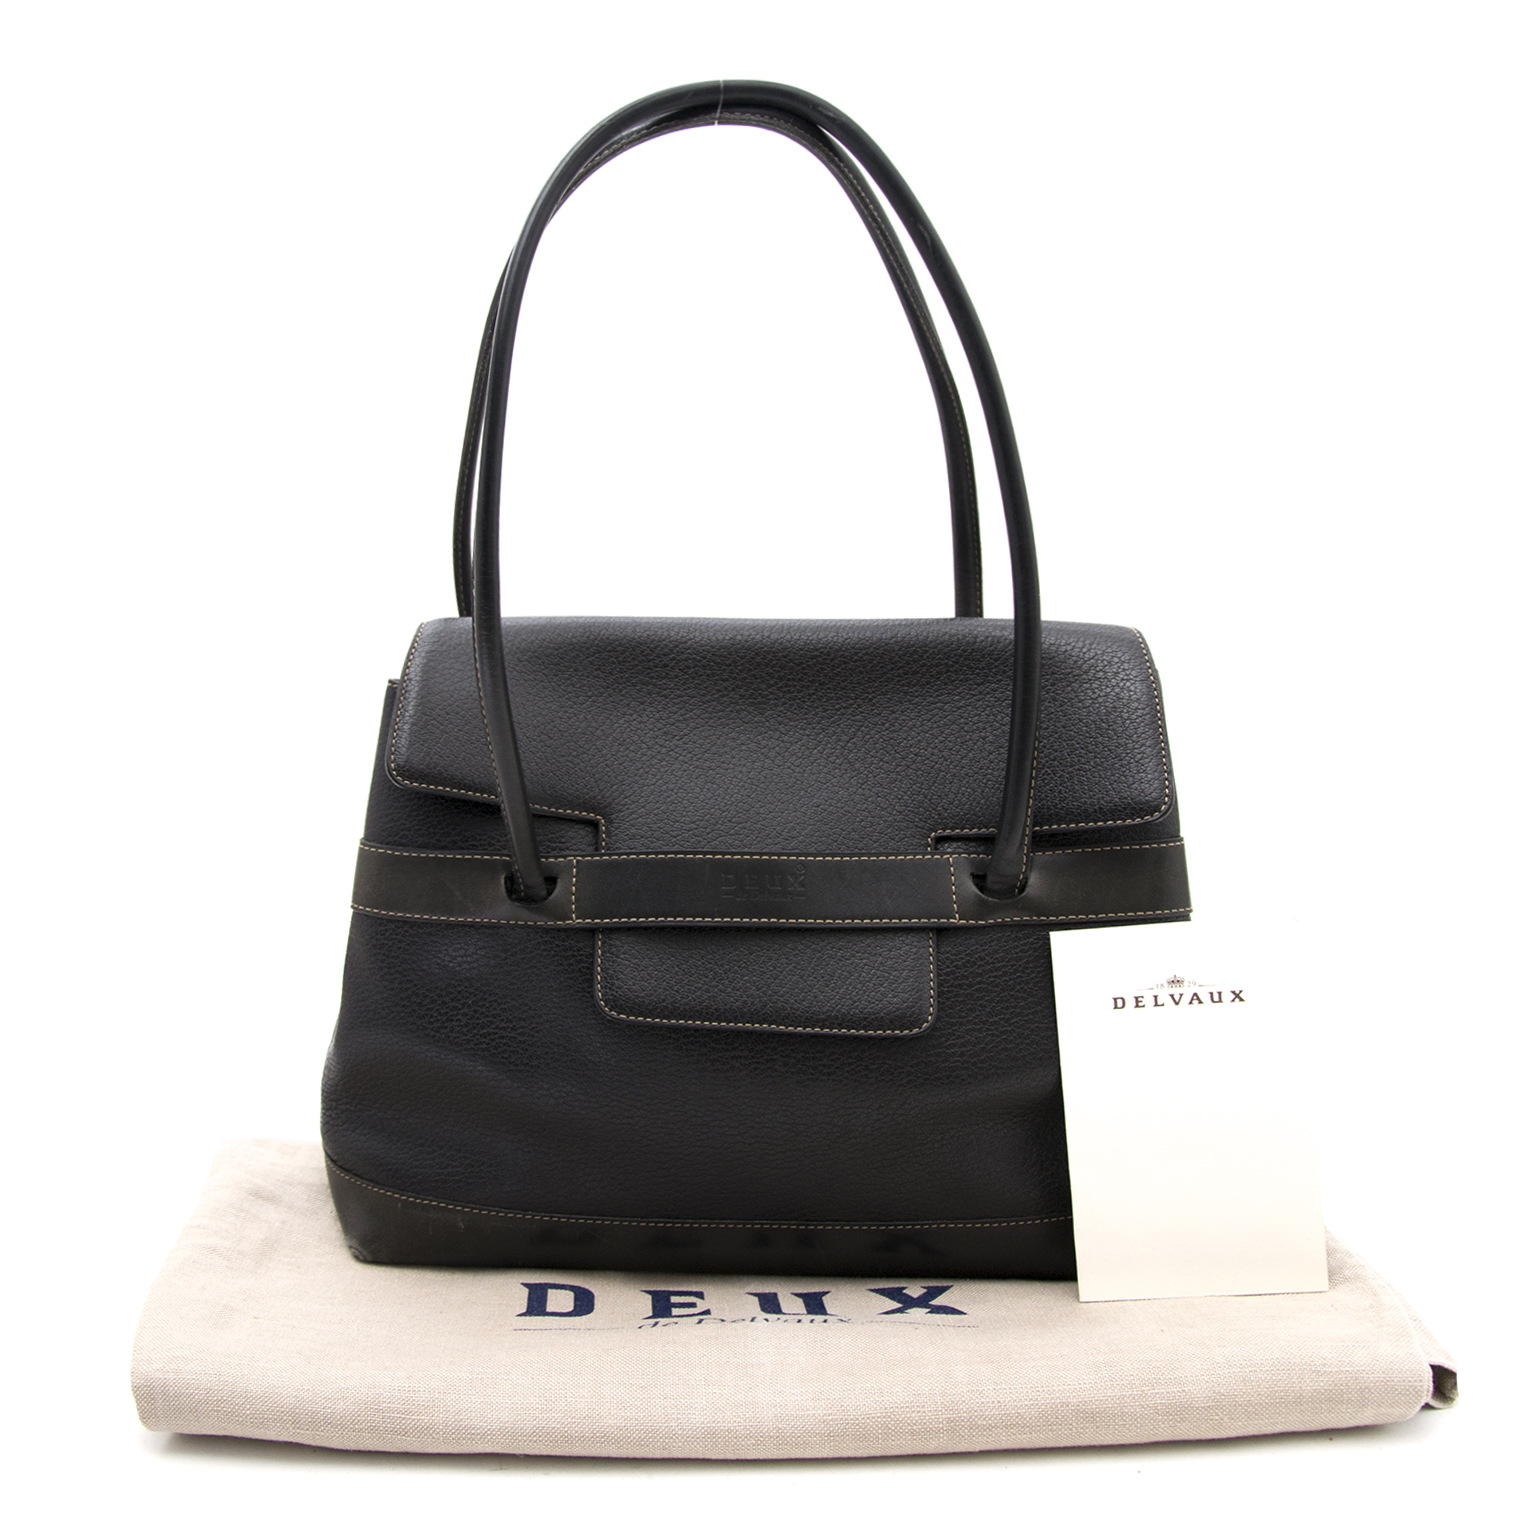 60ba2b6e7d6 ... Buy and sell your designer handbags at labellov.com for the best price  Delvaux Black